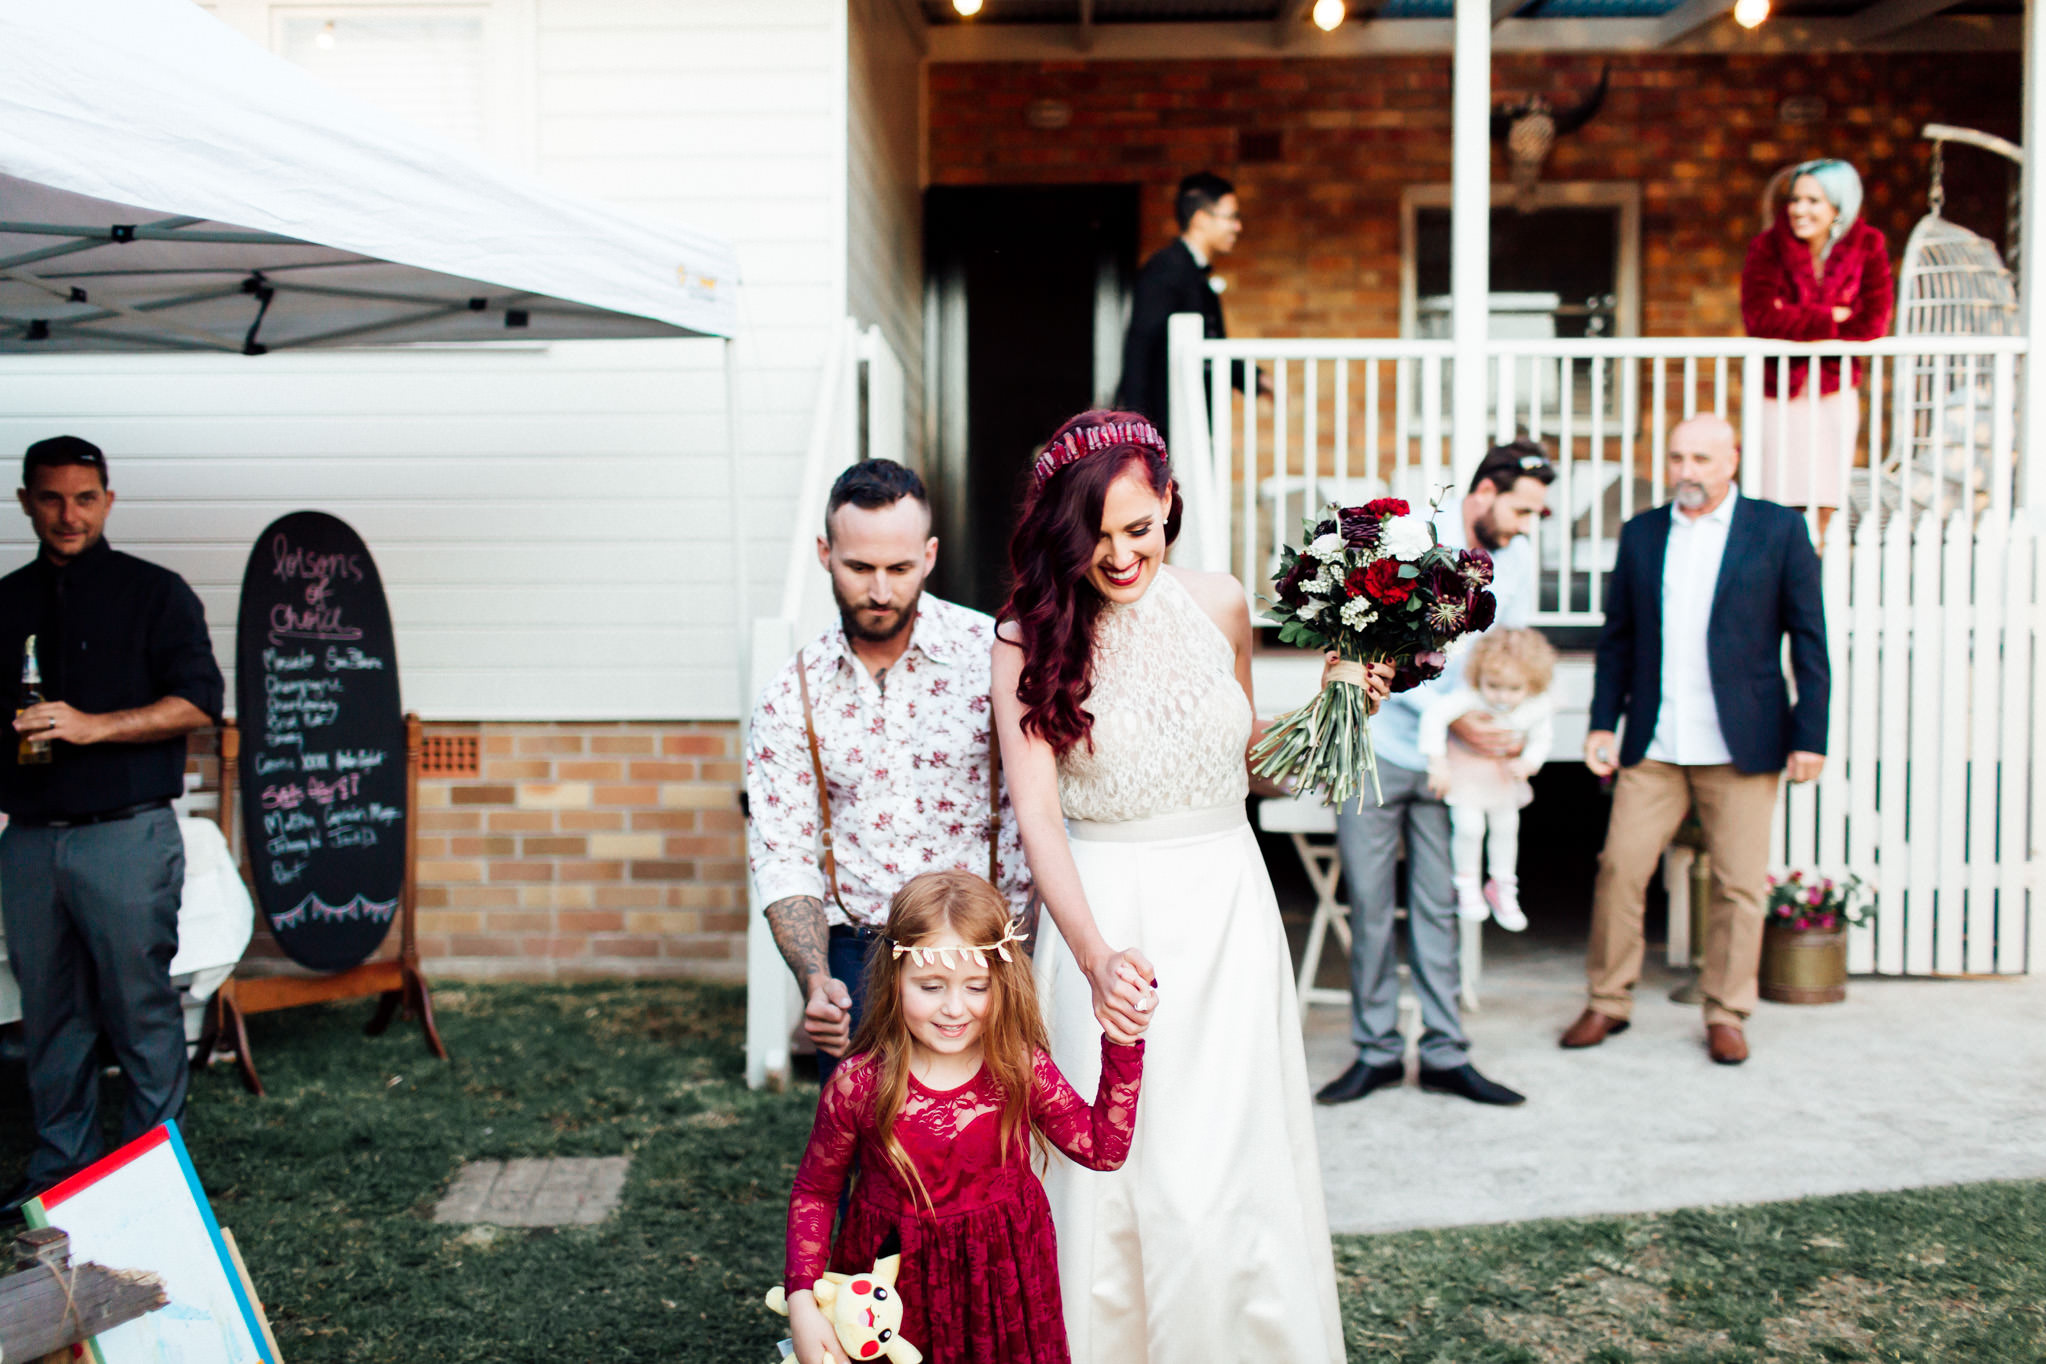 Backyardwedding_Newcastle_WeddingPhotography-1103.jpg